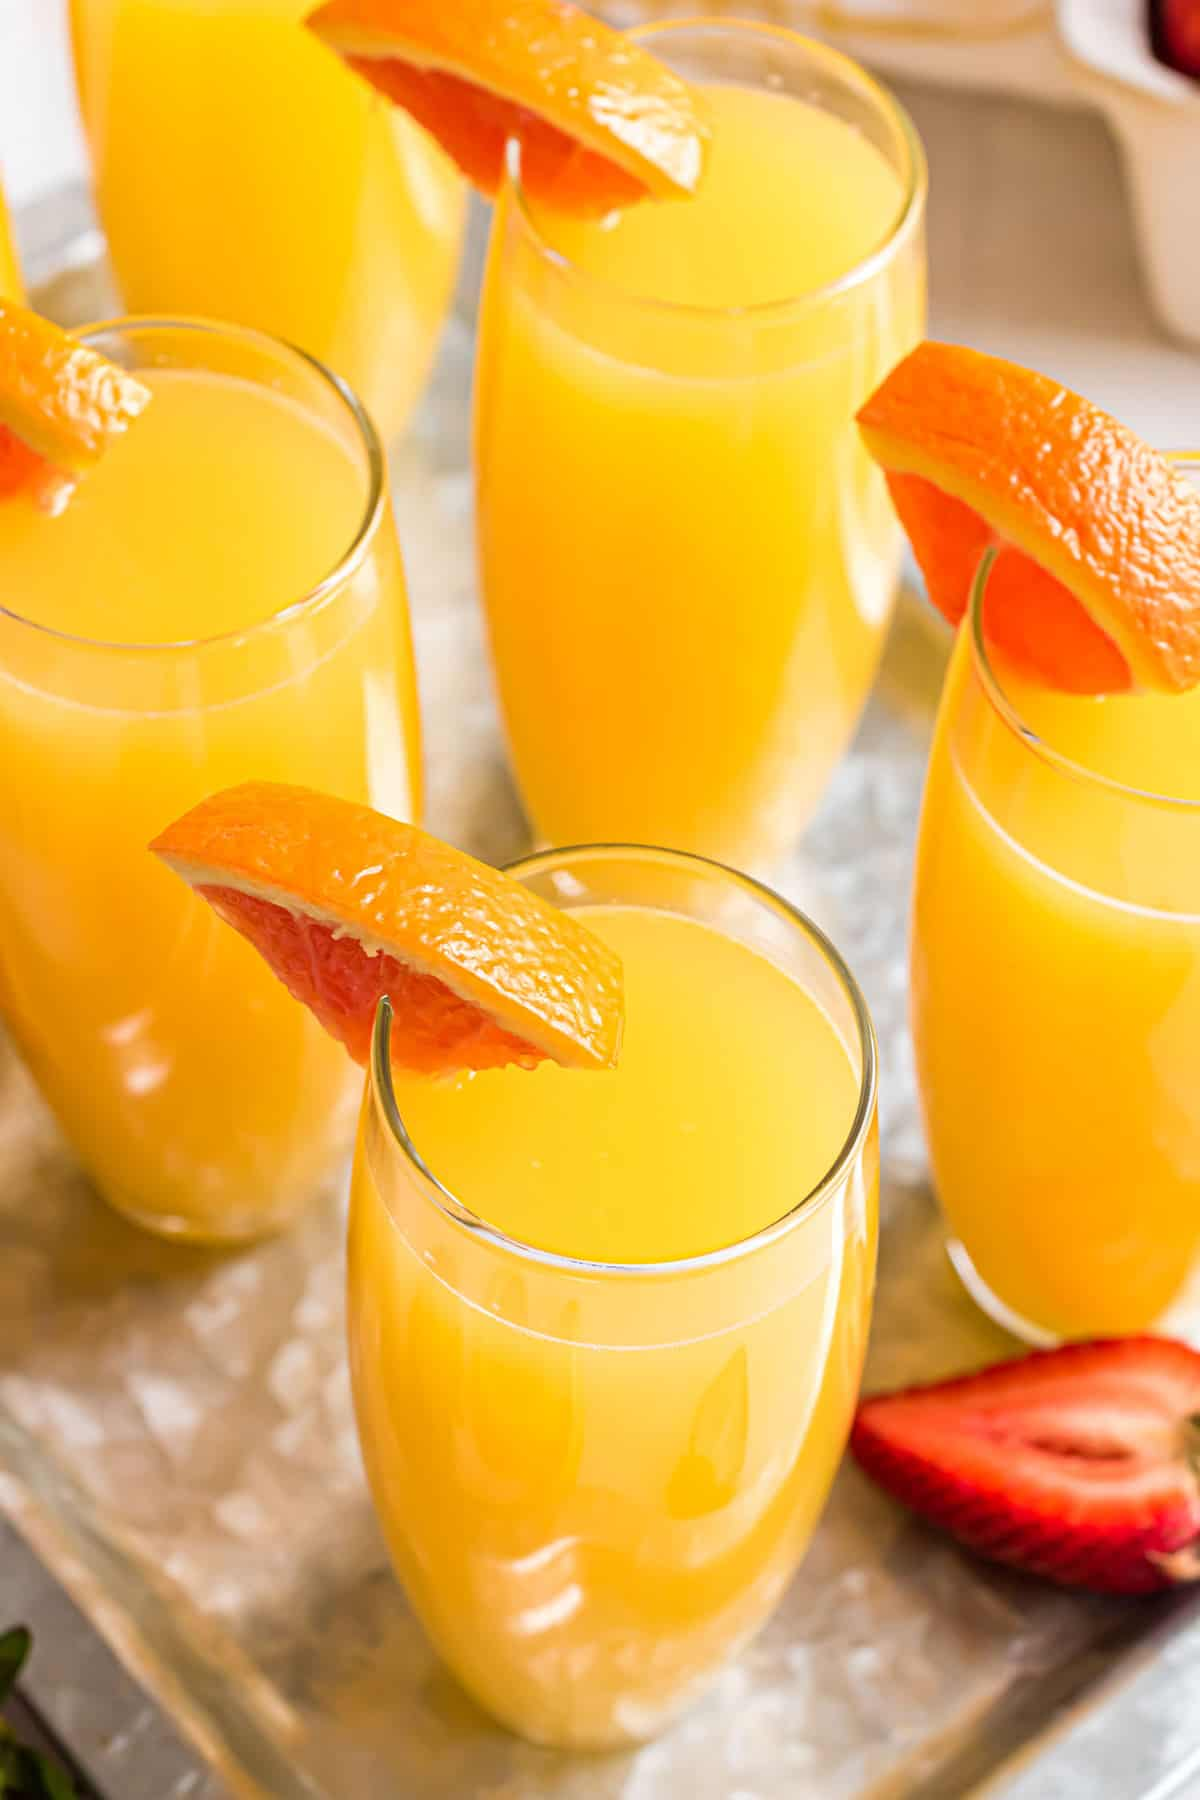 Angled overhead view of mimosas garnished with orange slices.